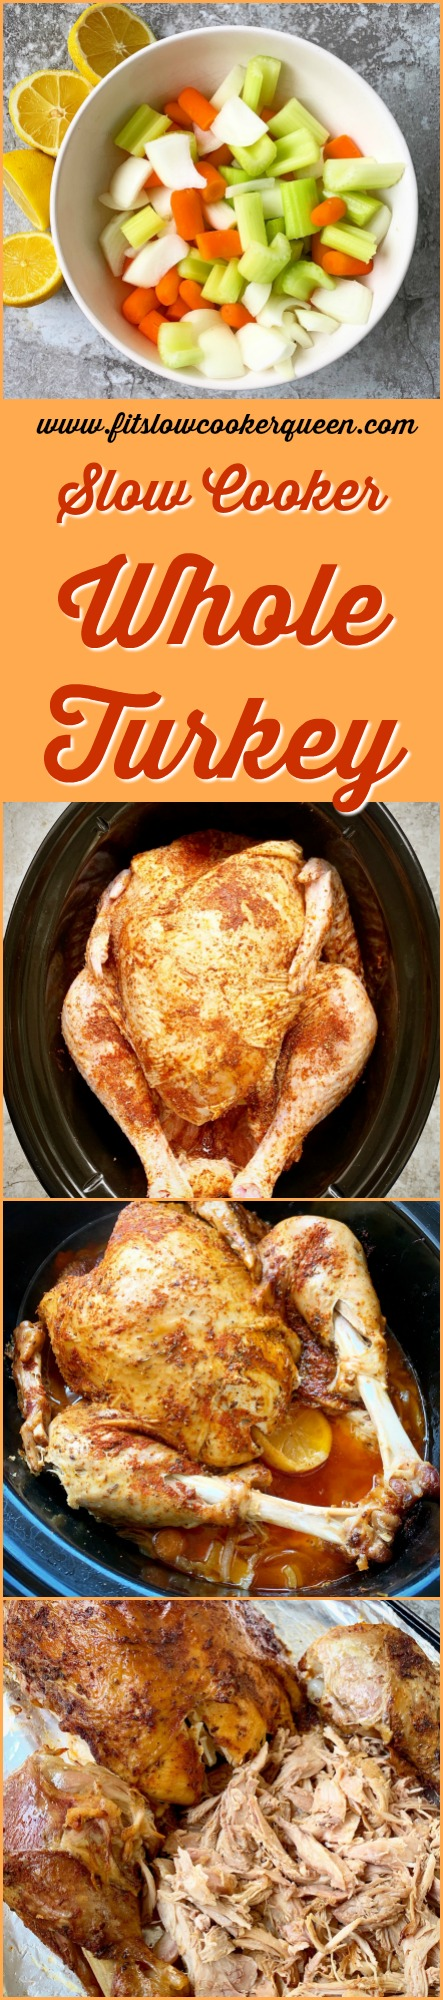 pinterest pin for slow cooker whole turkey